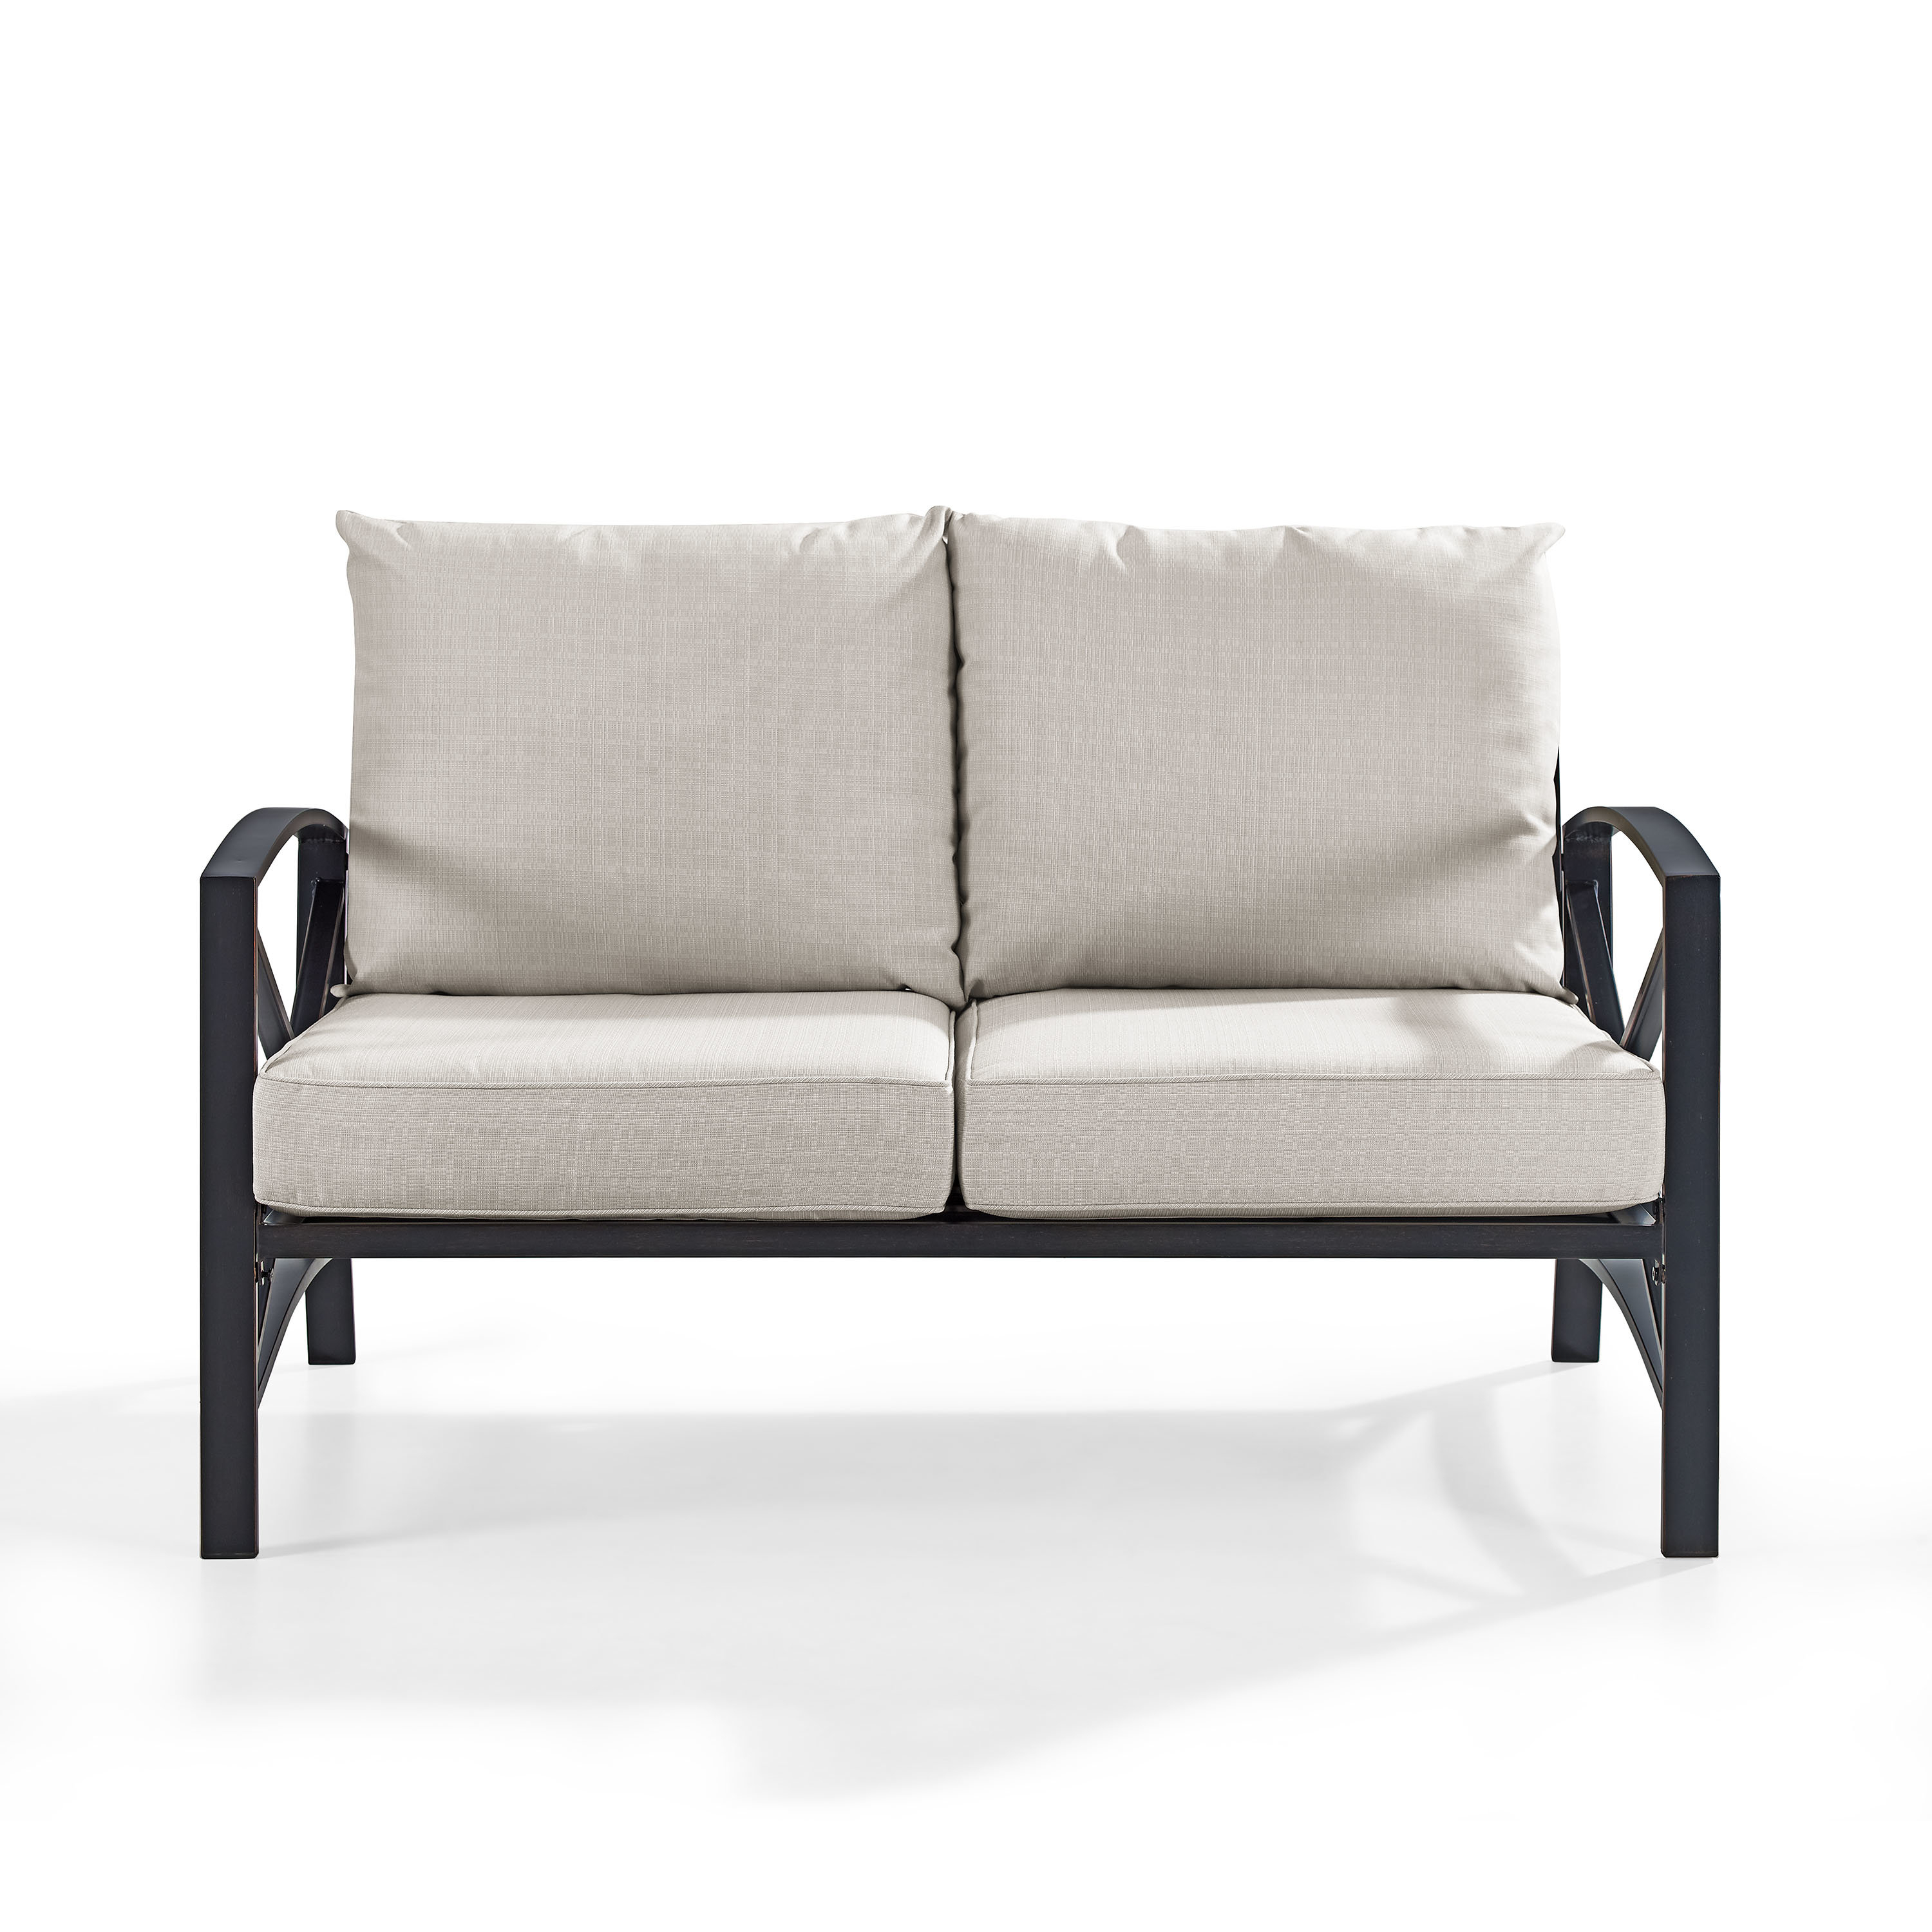 Lyall Loveseats With Cushion With Regard To Most Popular Freitag Loveseat With Cushions (View 10 of 20)